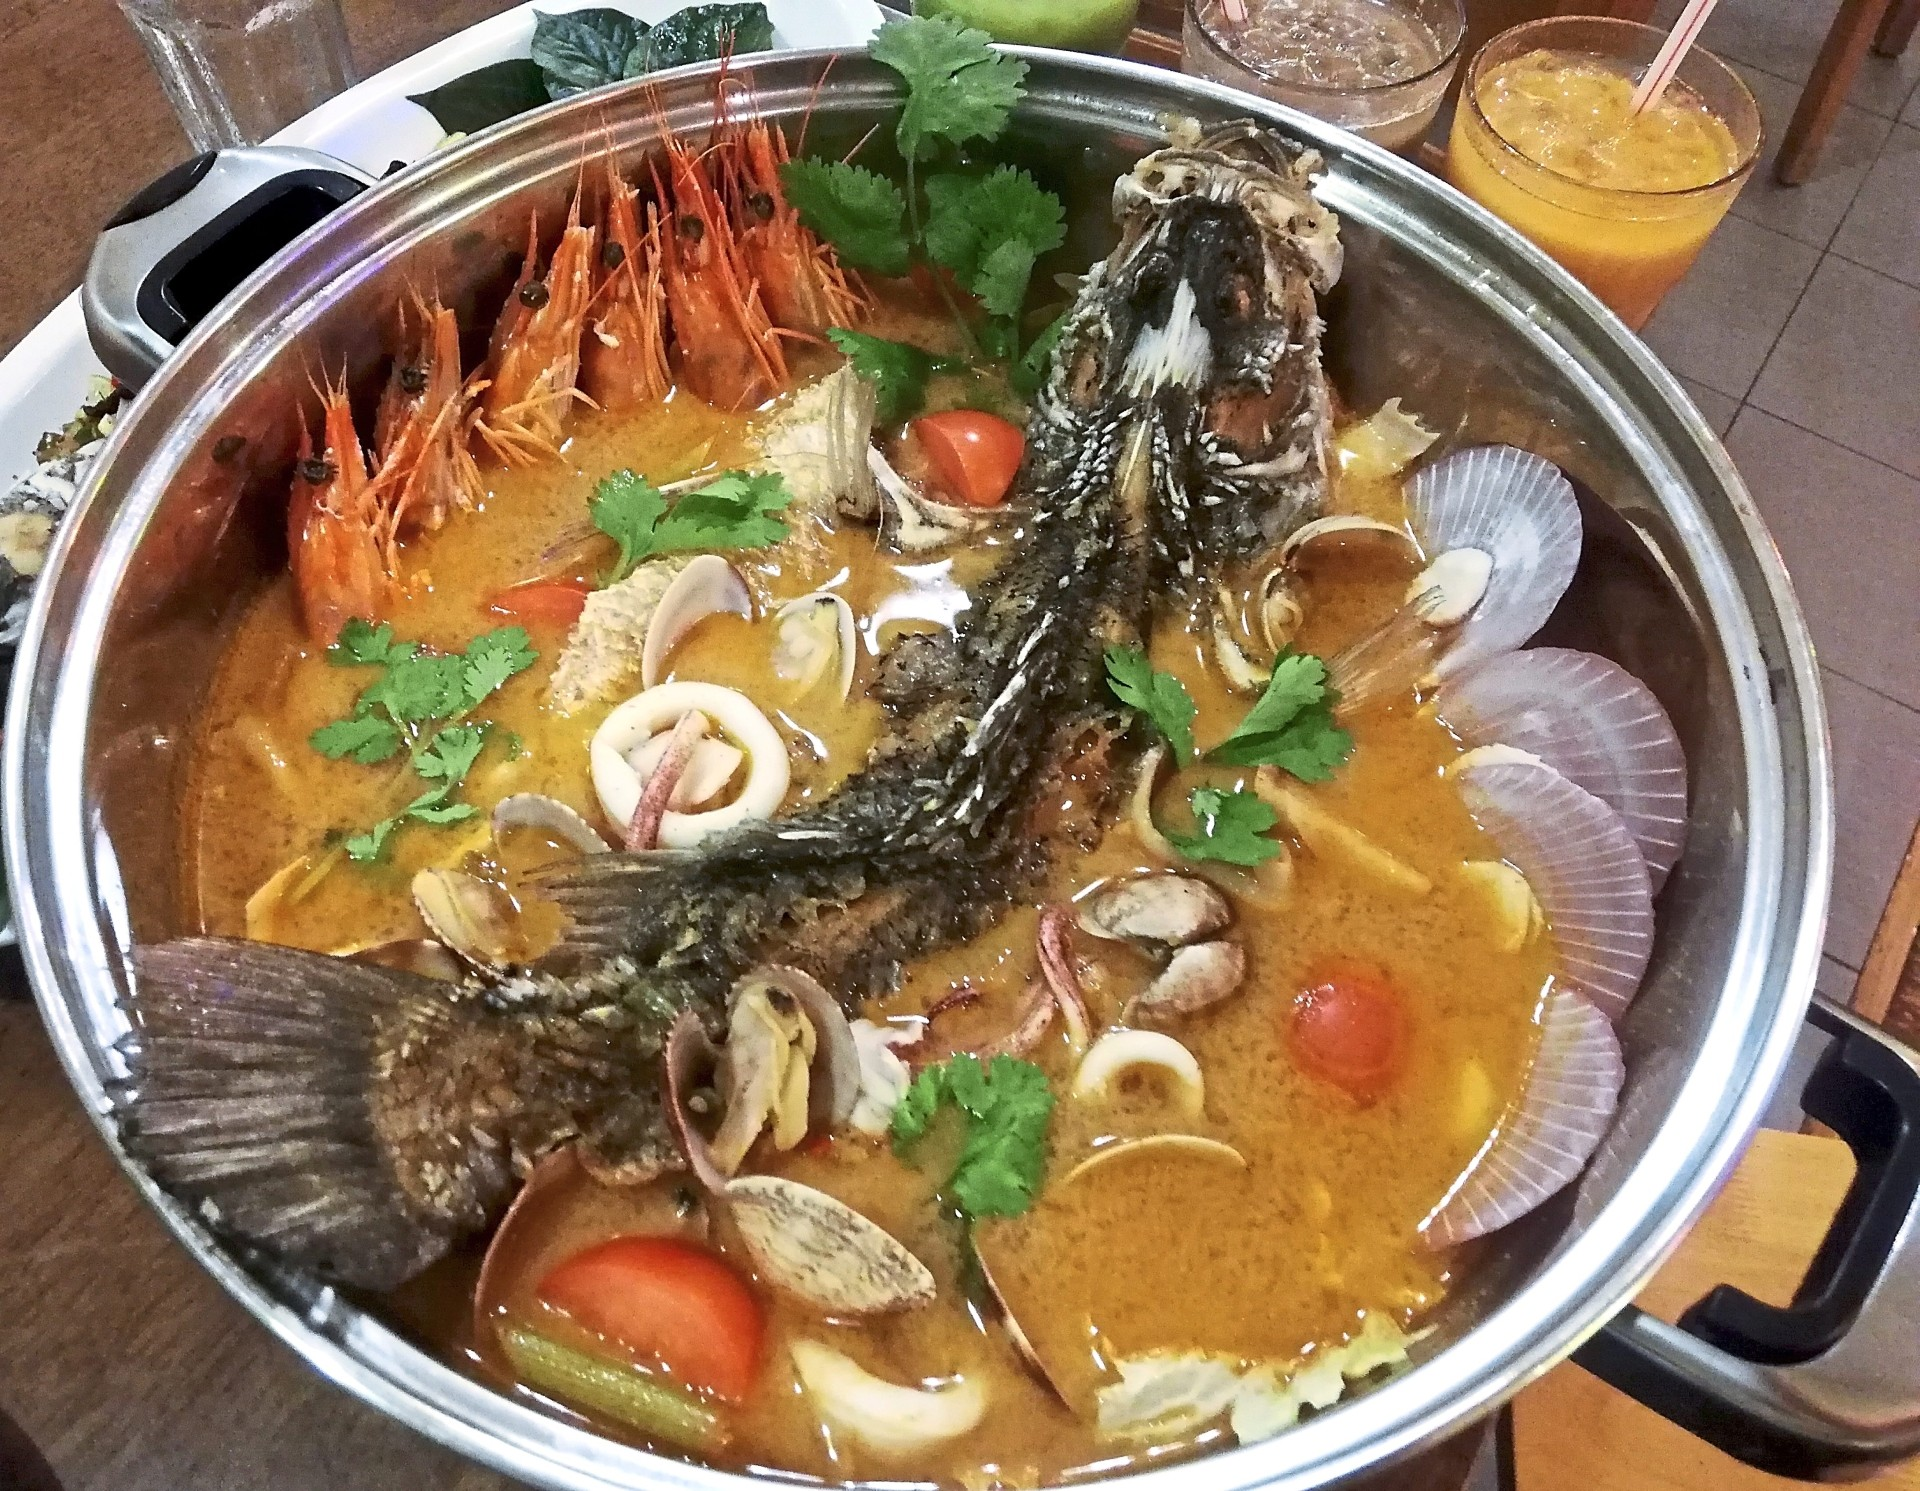 Tom yam lovers will enjoy the 'Super Moh Fai Talay'.